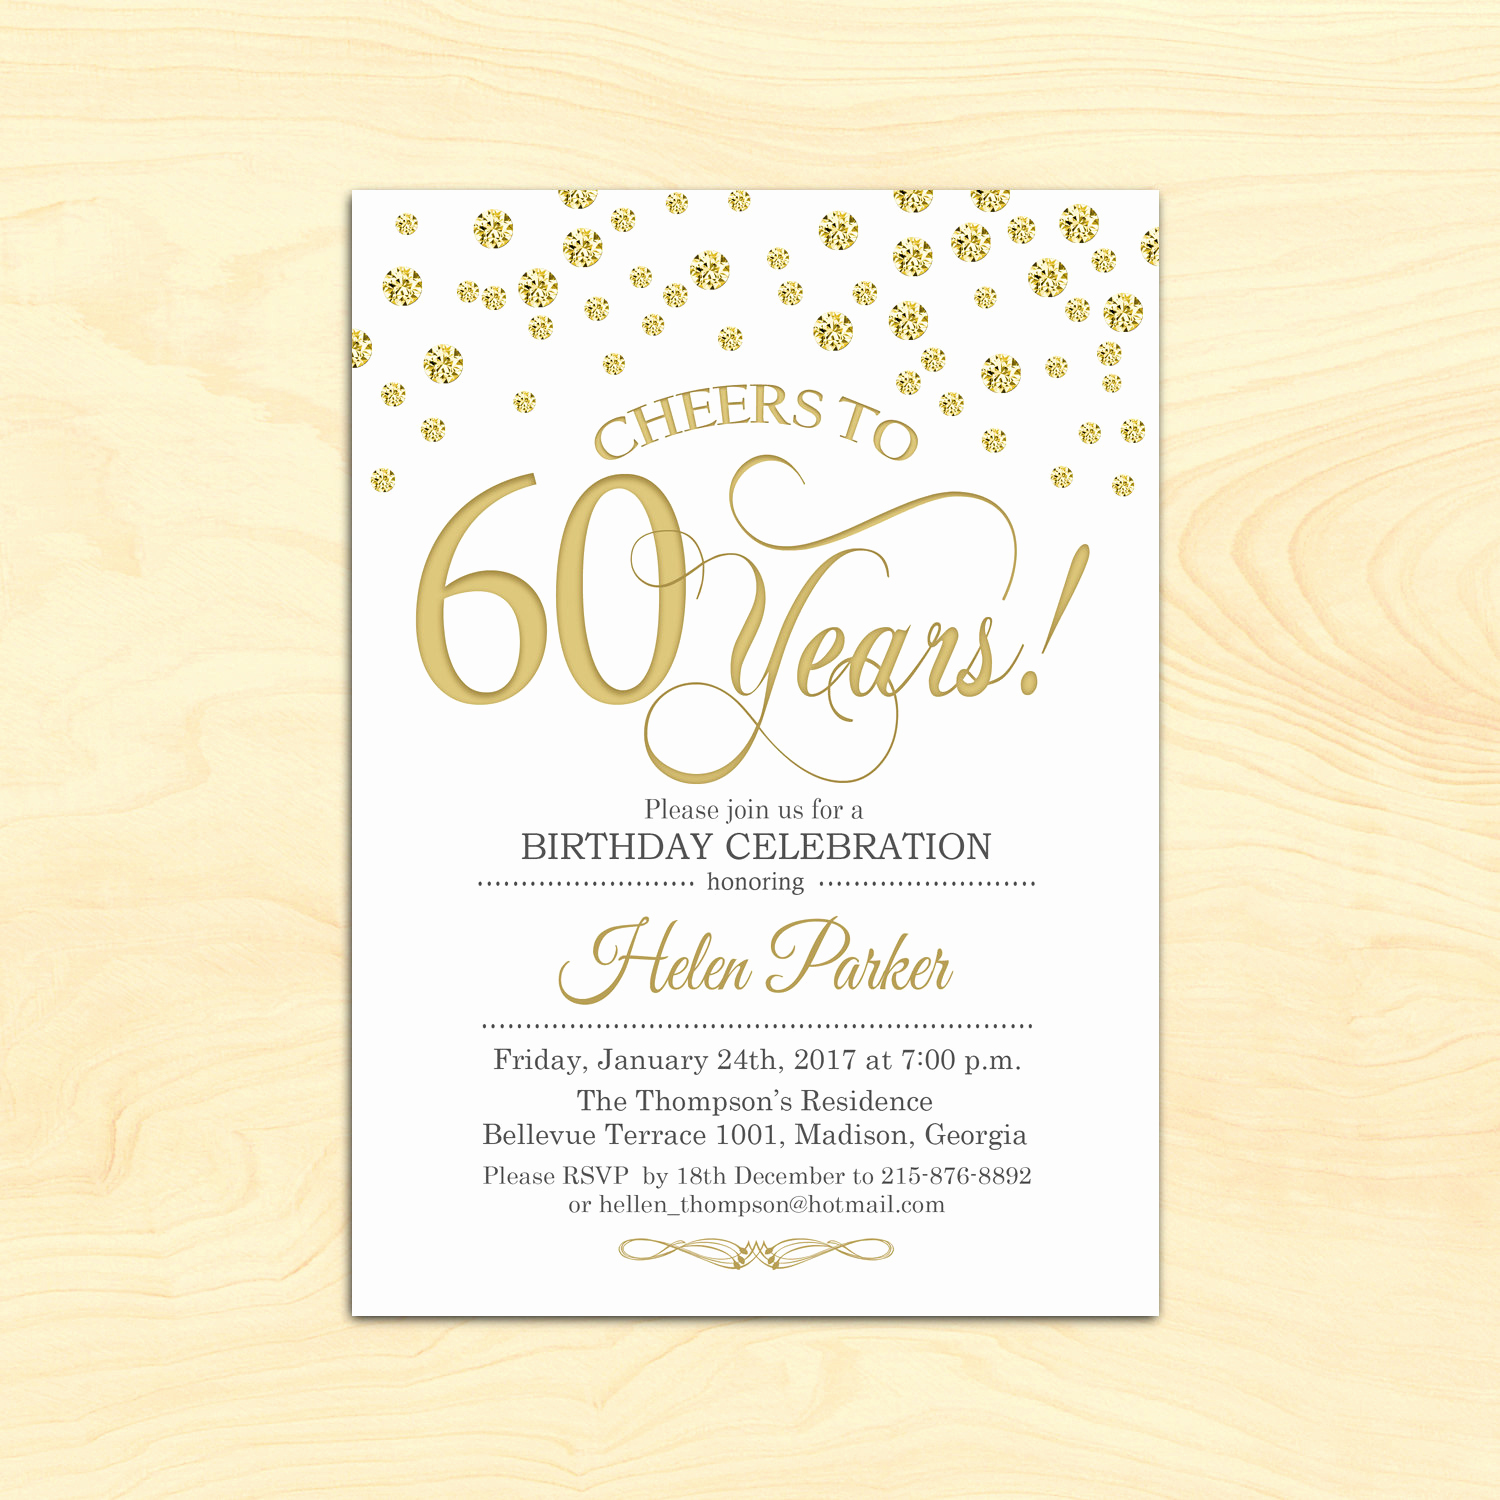 60 Th Birthday Invitation Inspirational 60th Birthday Invitation Any Age Cheers to 60 Years Gold